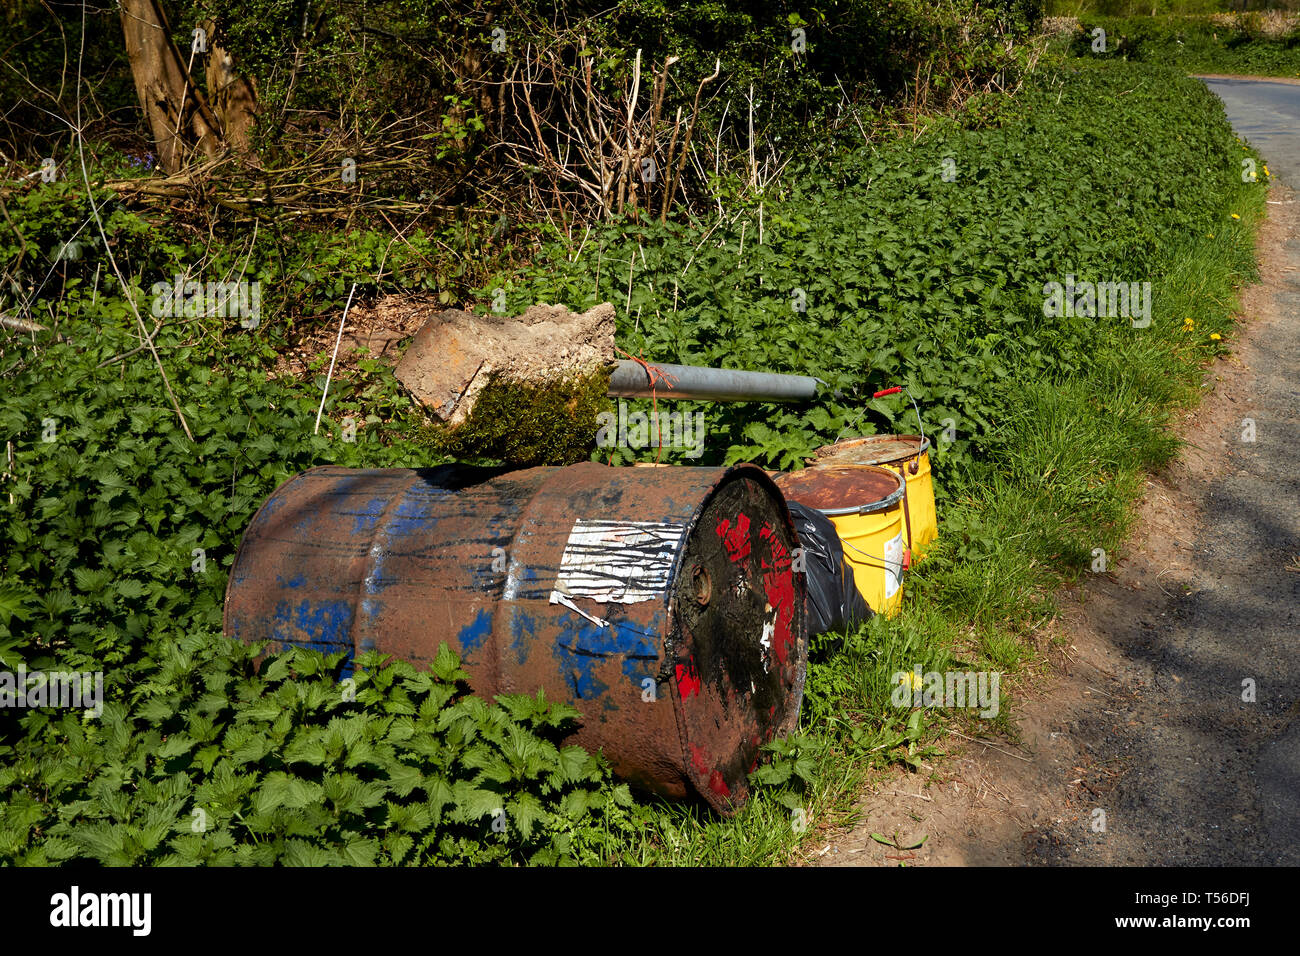 Fly-tipped rubbish along a country road in the beautiful Kent countryside - Stock Image